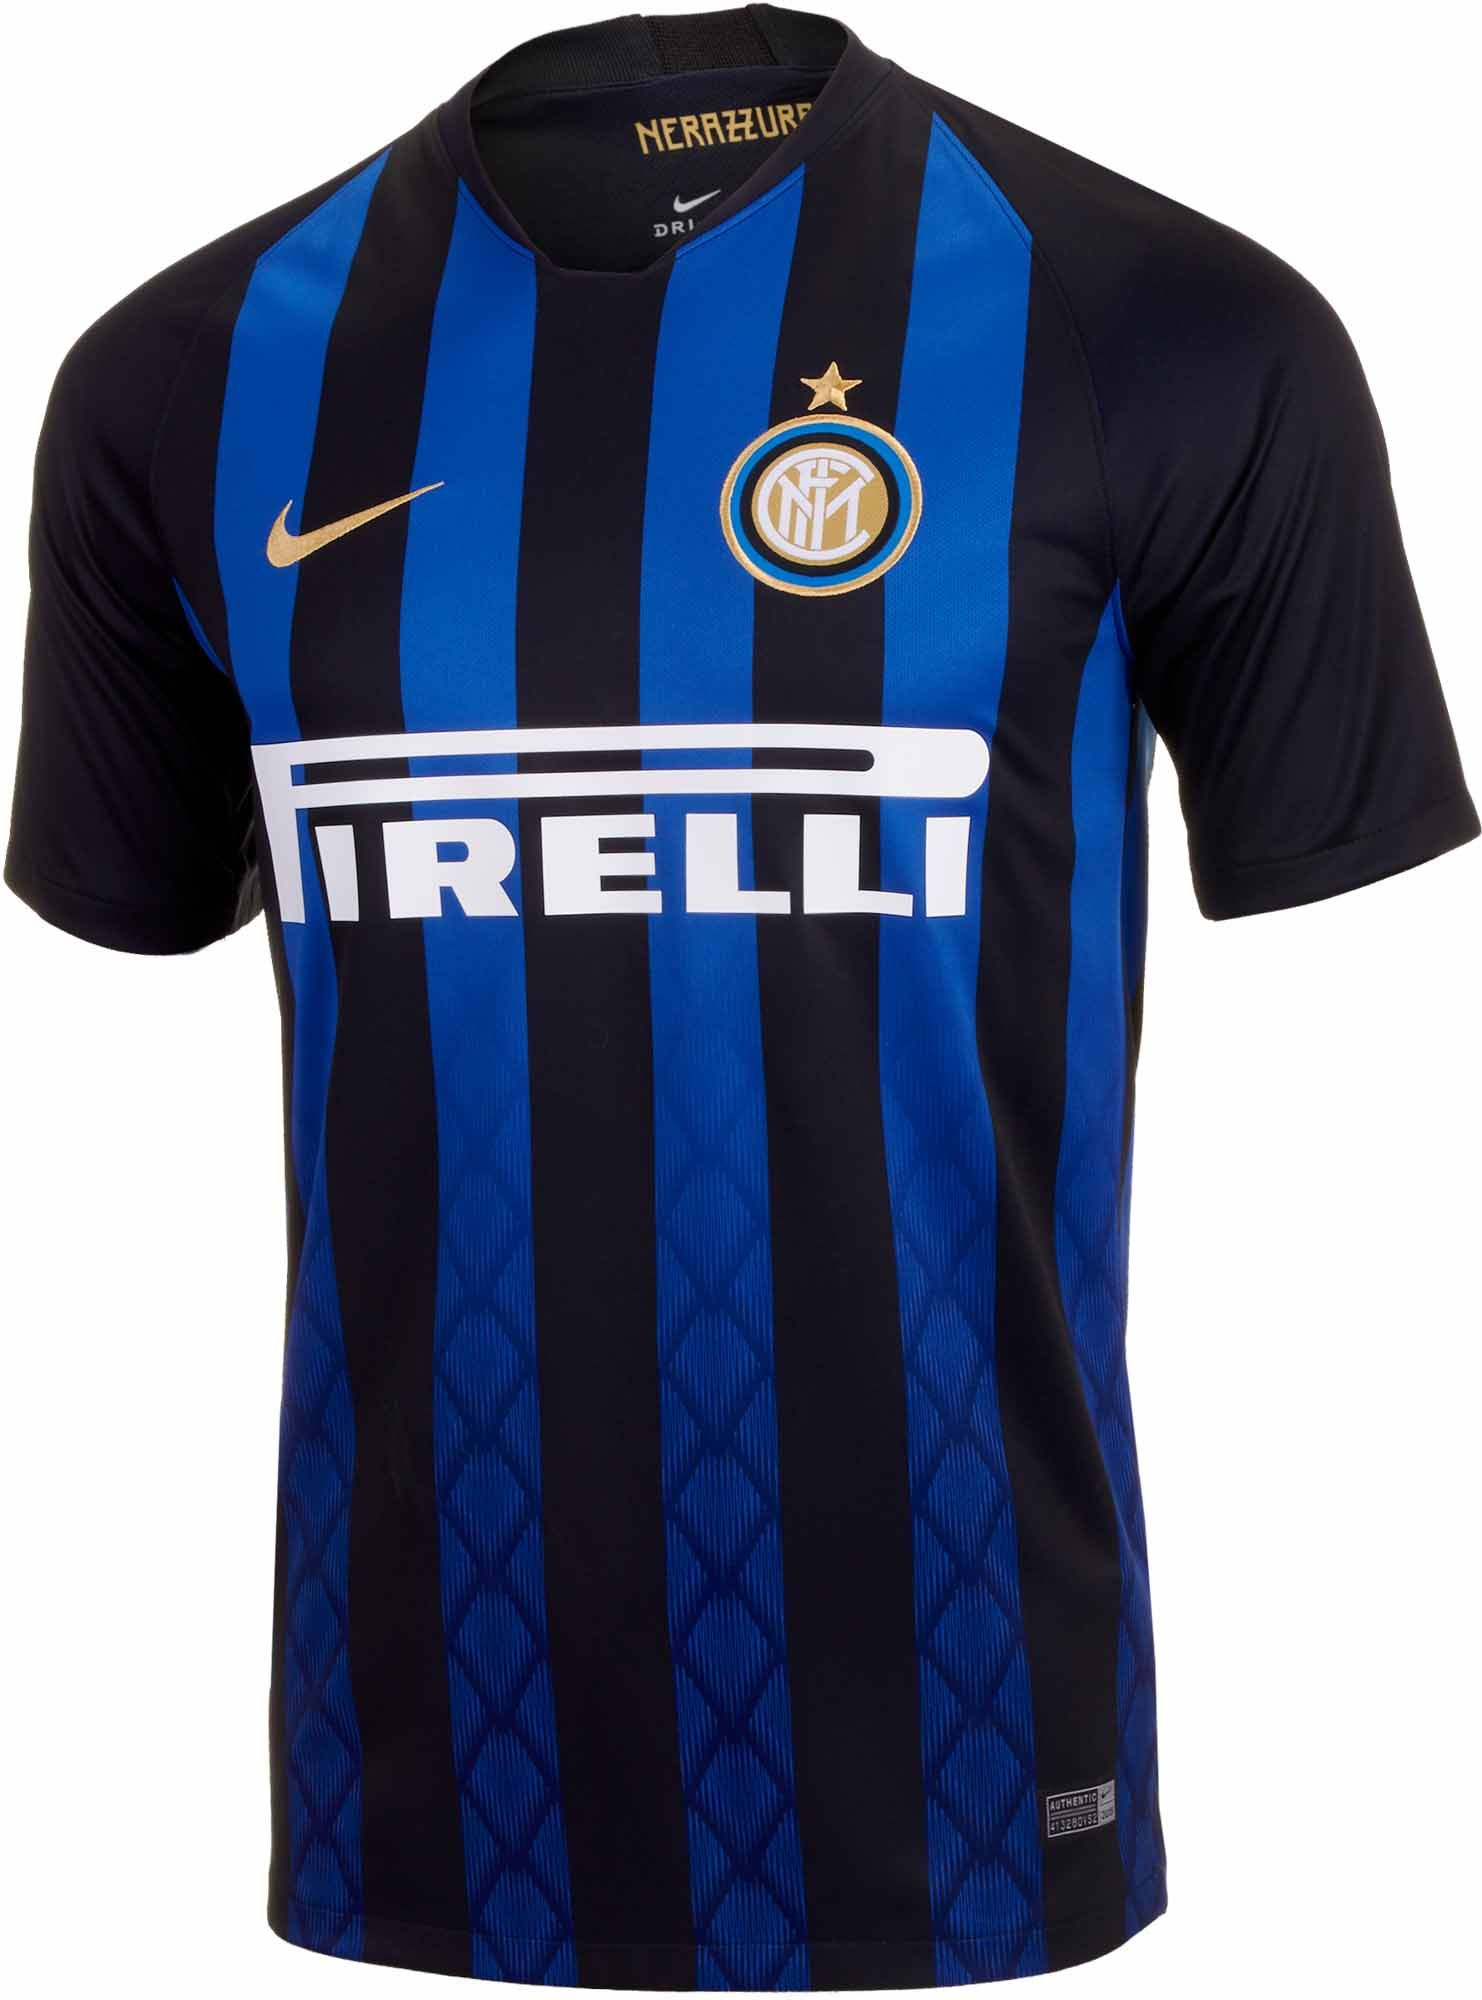 b2158b366 2018 19 Nike Inter Milan Home Jersey. Buy it from SoccerPro ...